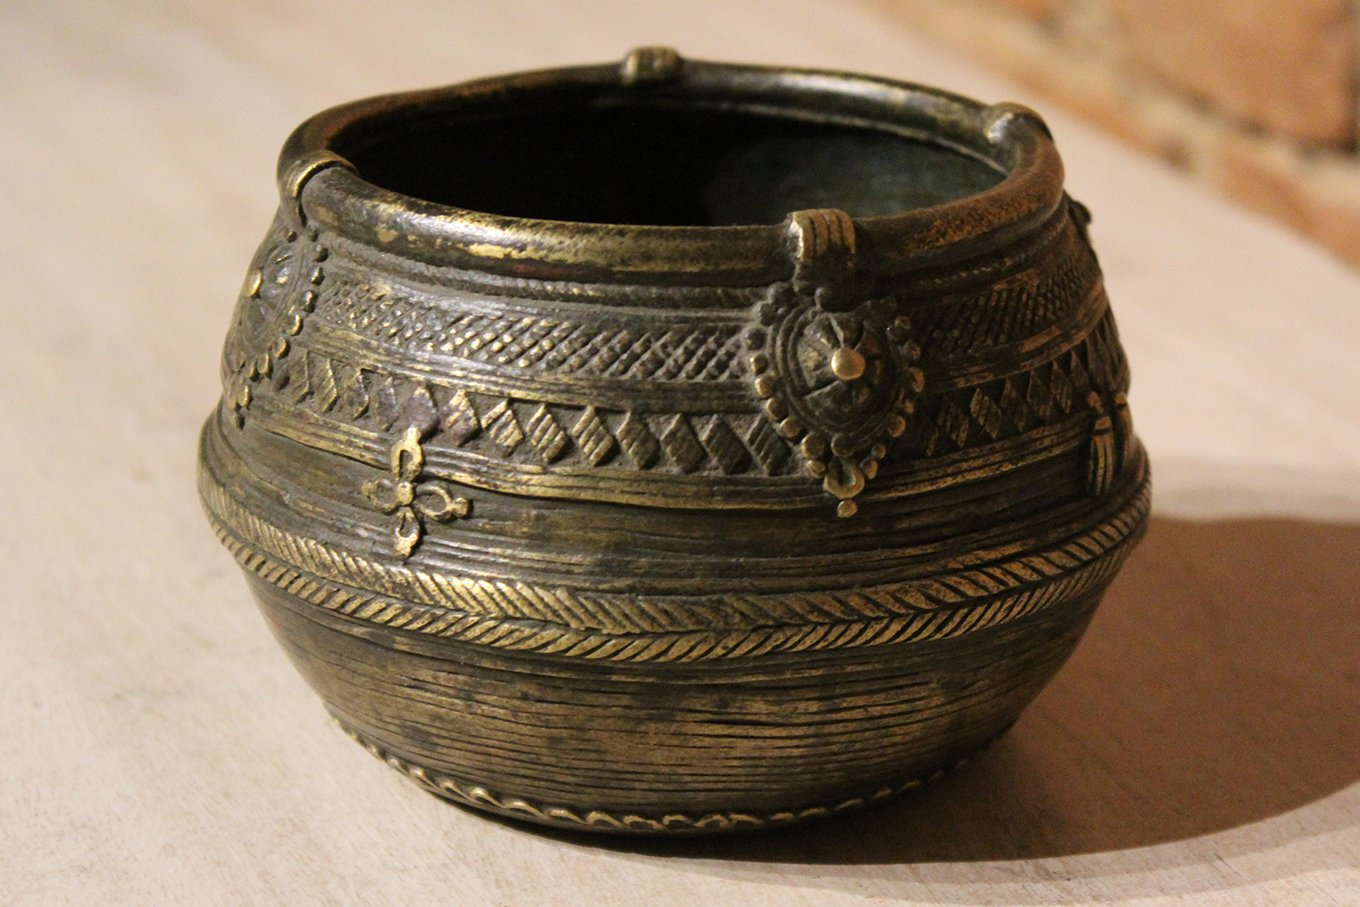 Old engraved brass pot